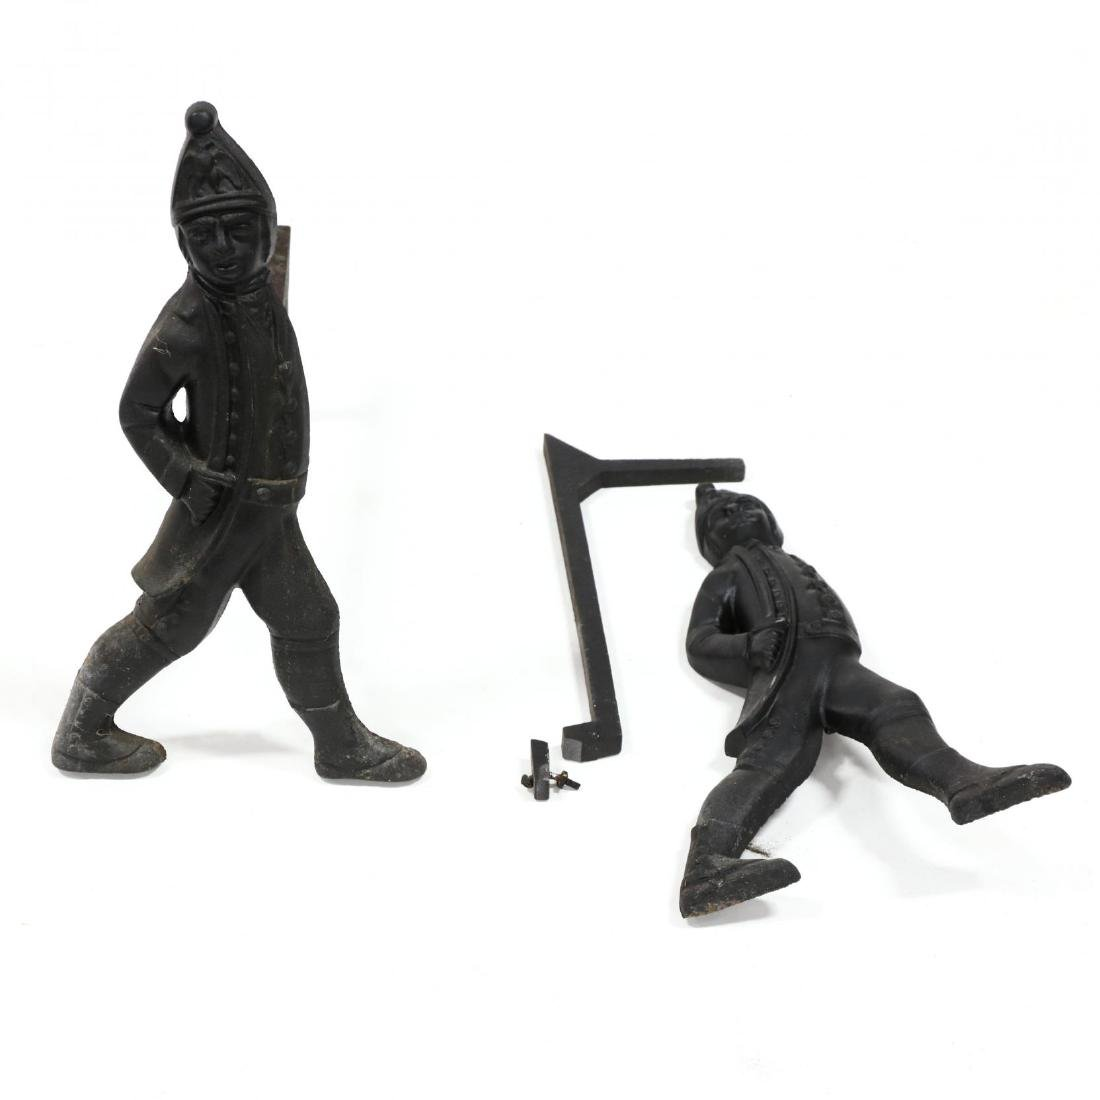 Pair of Cast Iron Hessian Soldier Andirons